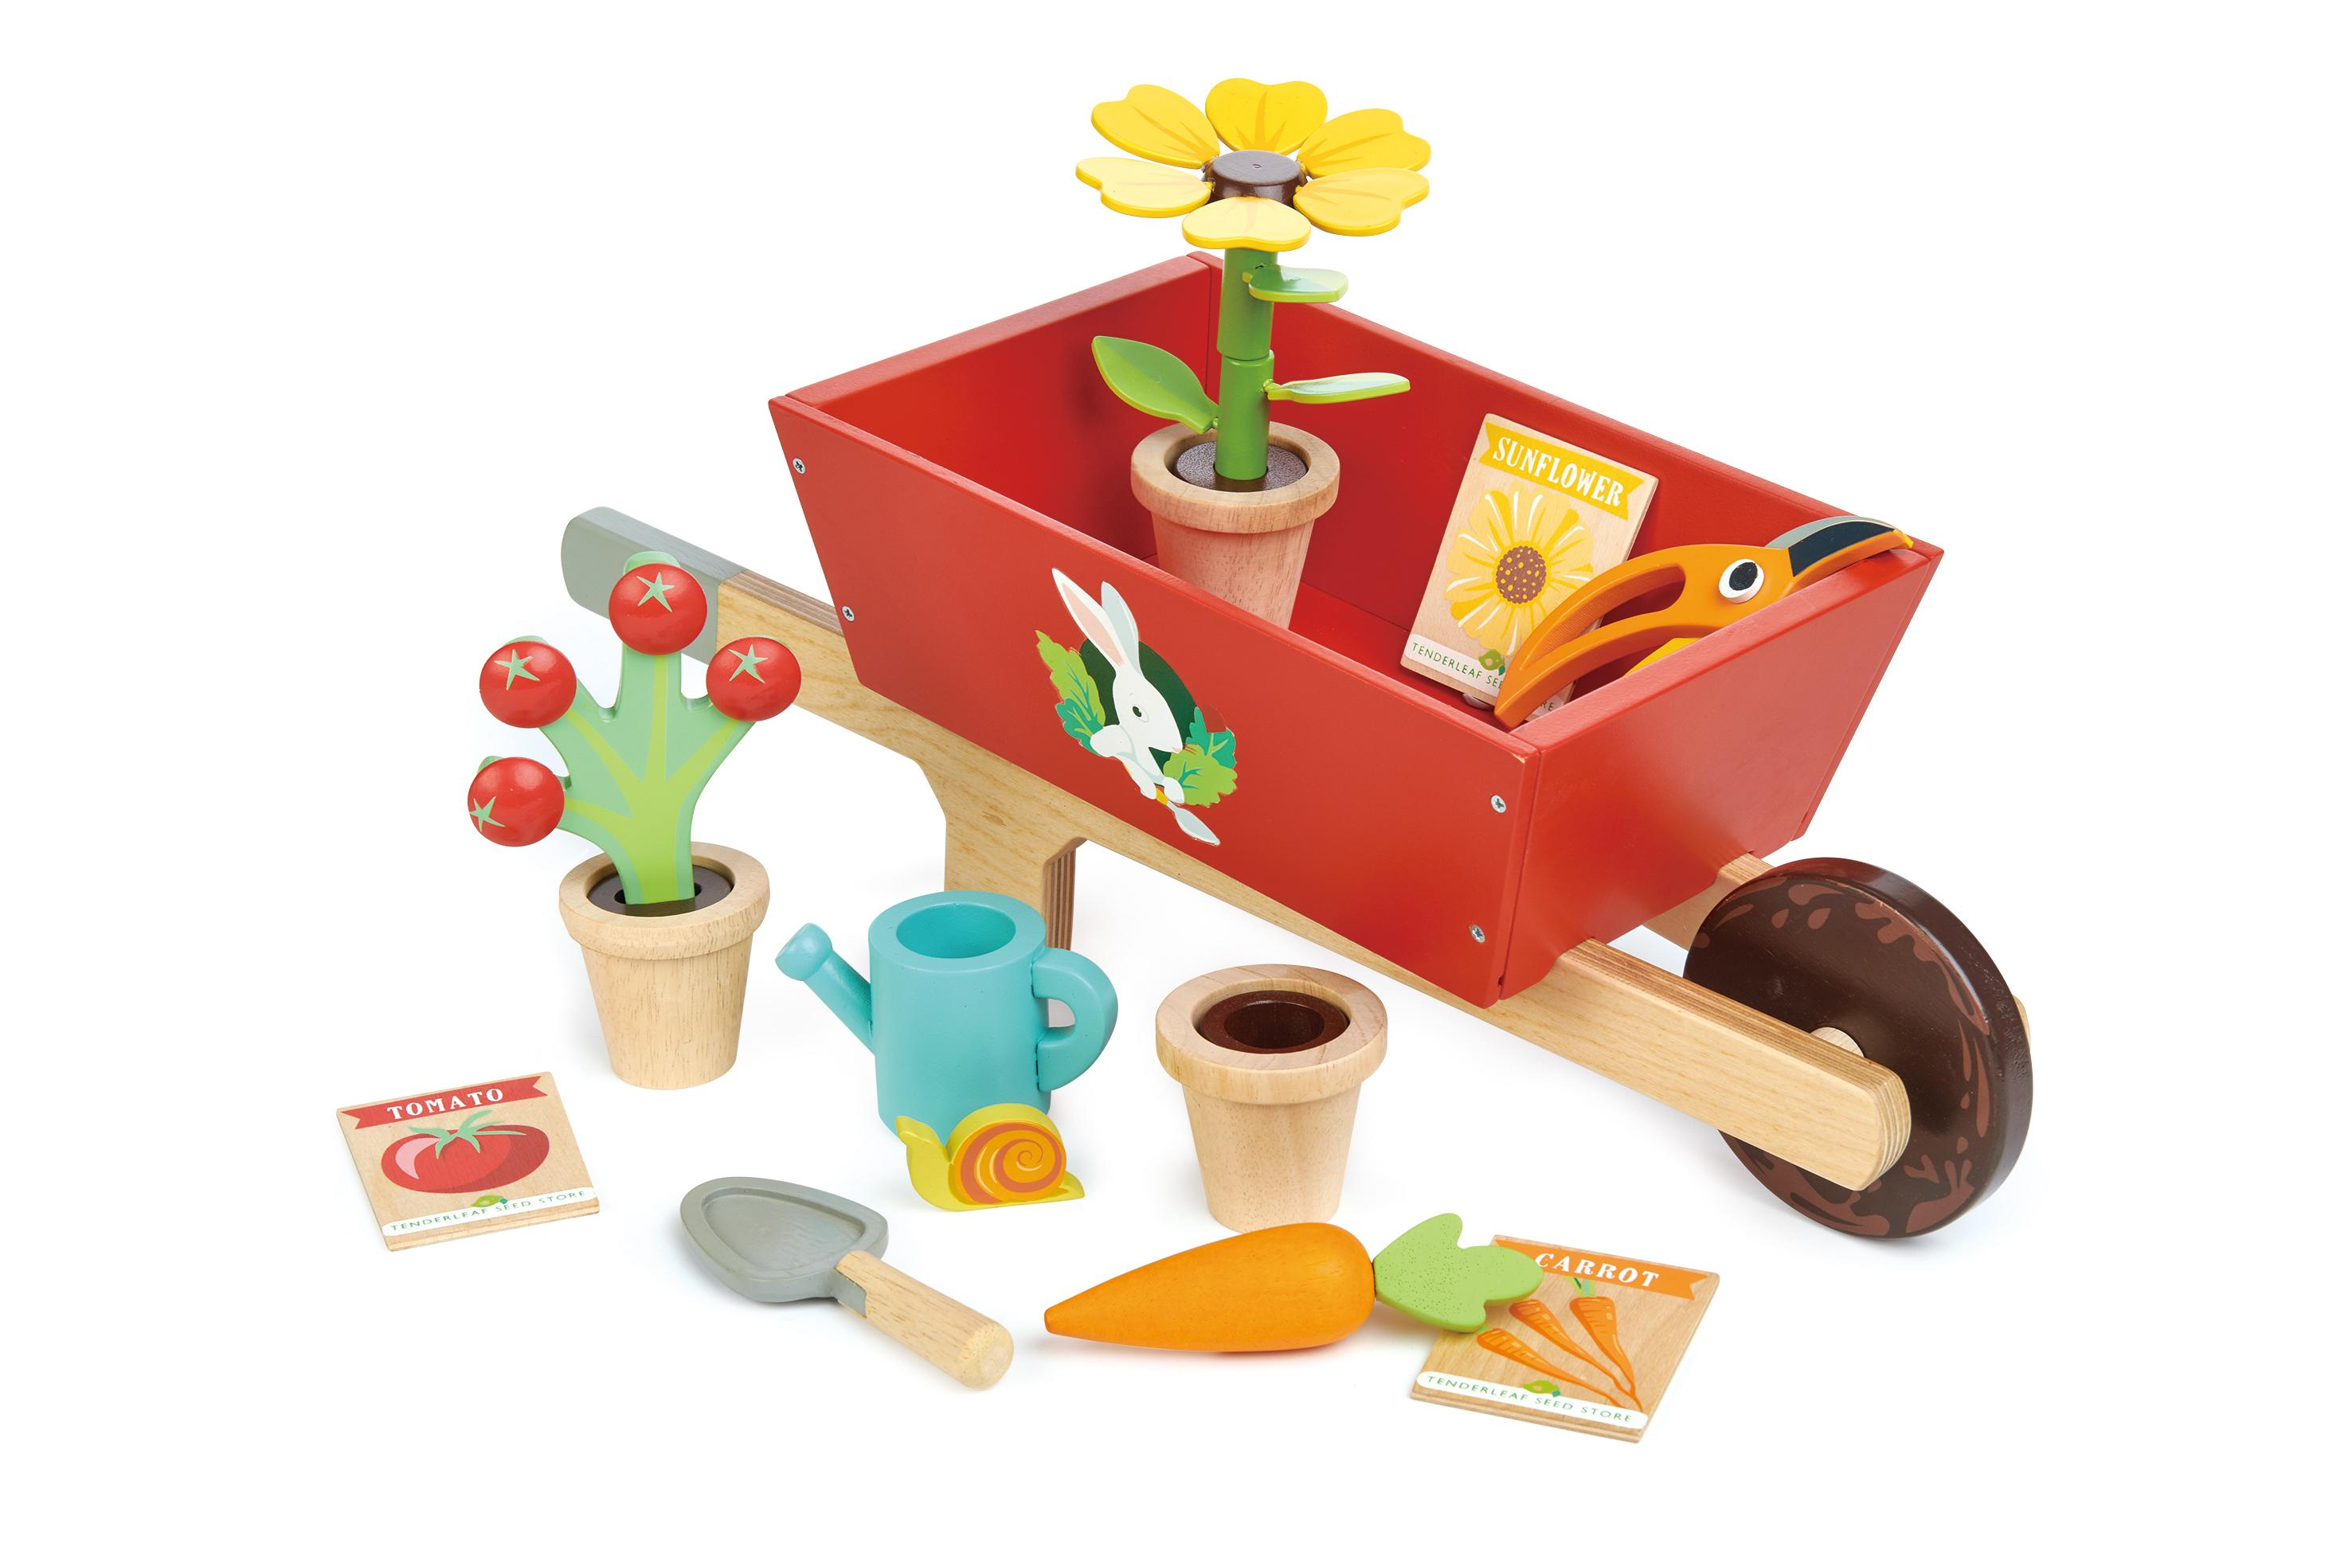 New Wooden Toy Wheelbarrow Set with Removeable Plants, Tools and more #2